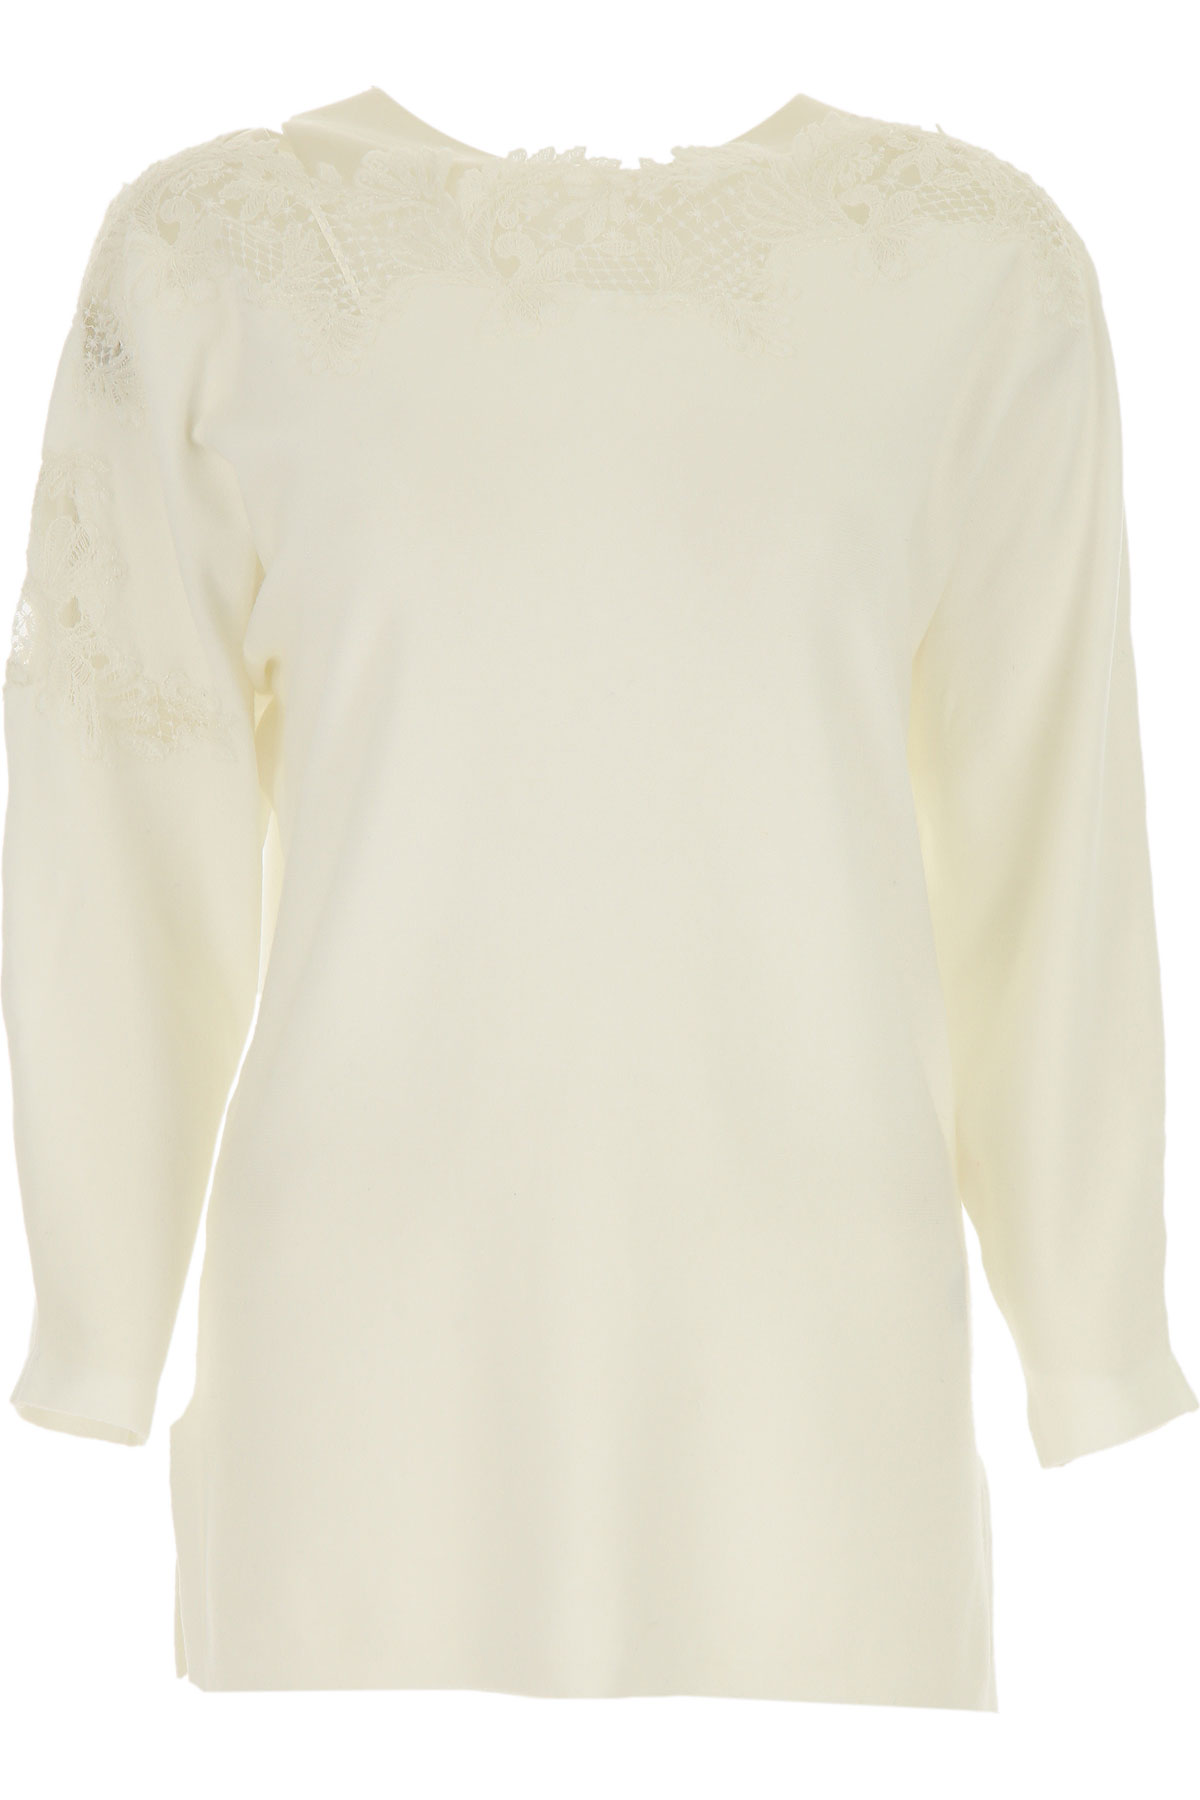 Ermanno Scervino Sweater for Women Jumper On Sale, White, polyester, 2019, 4 6